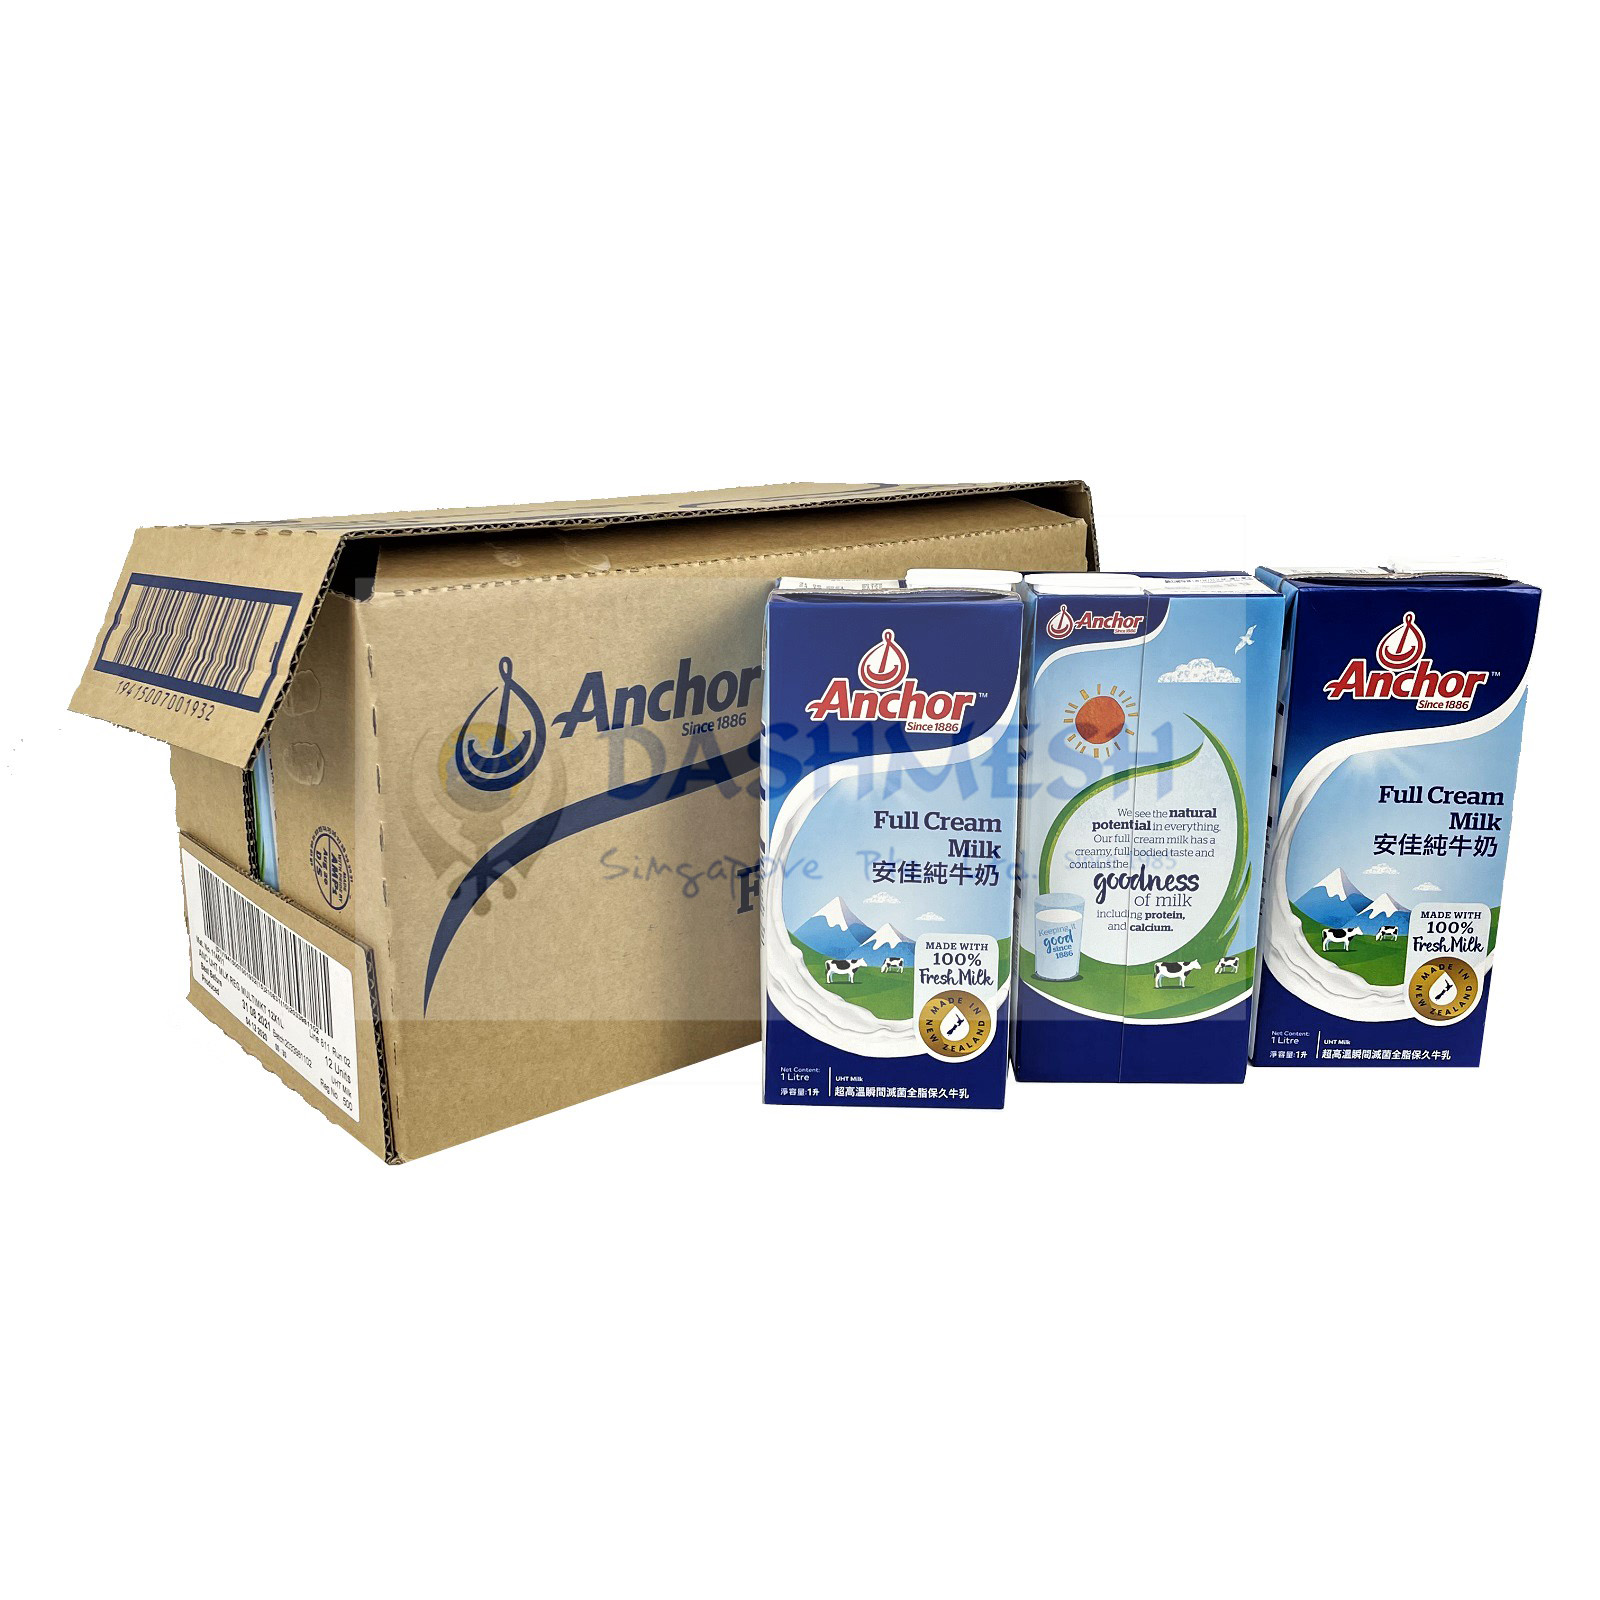 Anchor UHT Milk Carton (12×1 ltr)